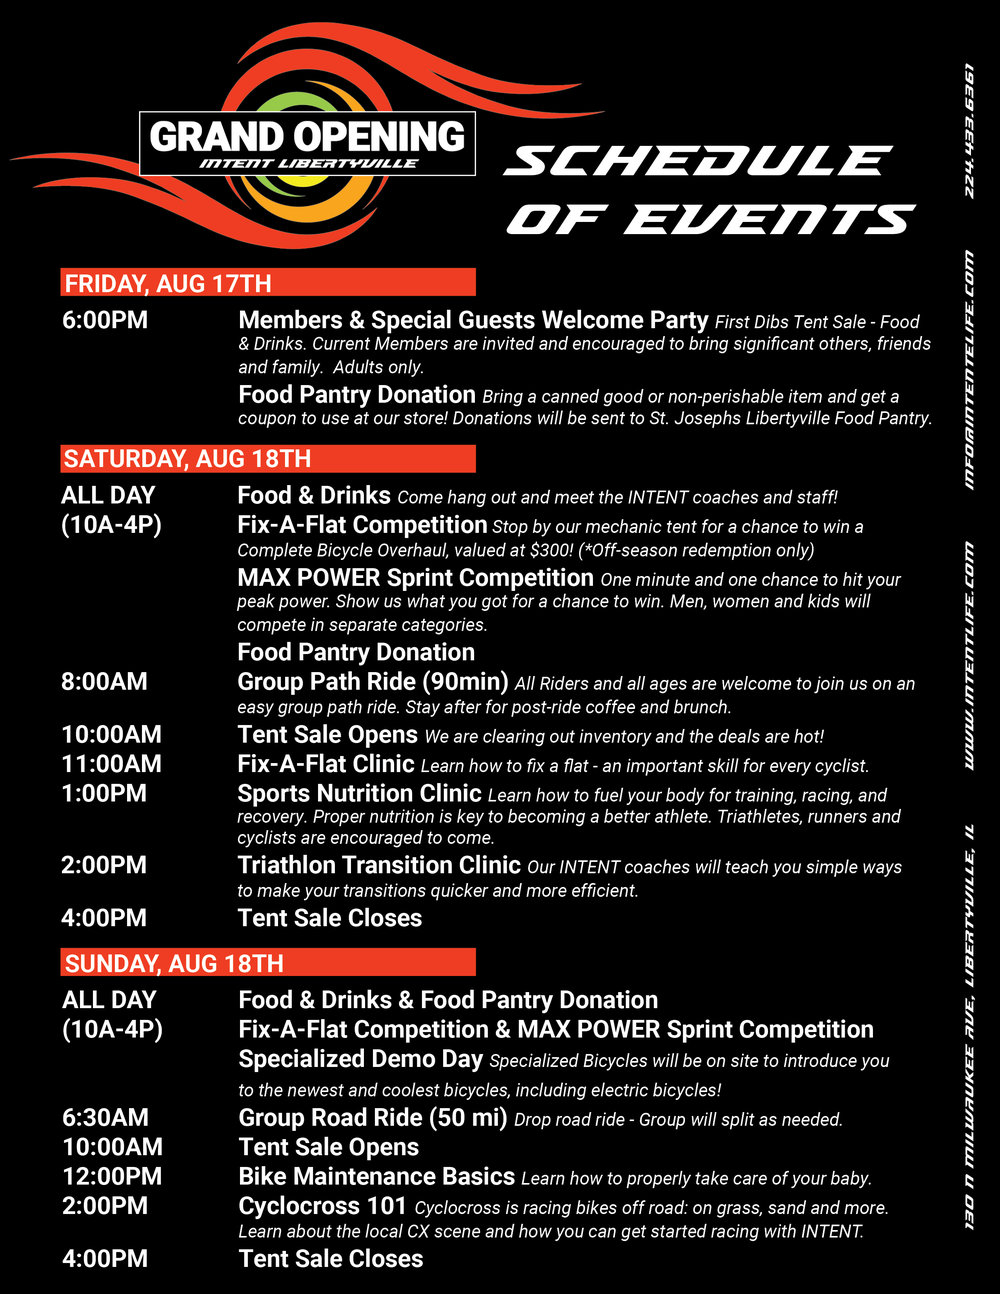 Grand Opening Schedule of Events_v2.jpg